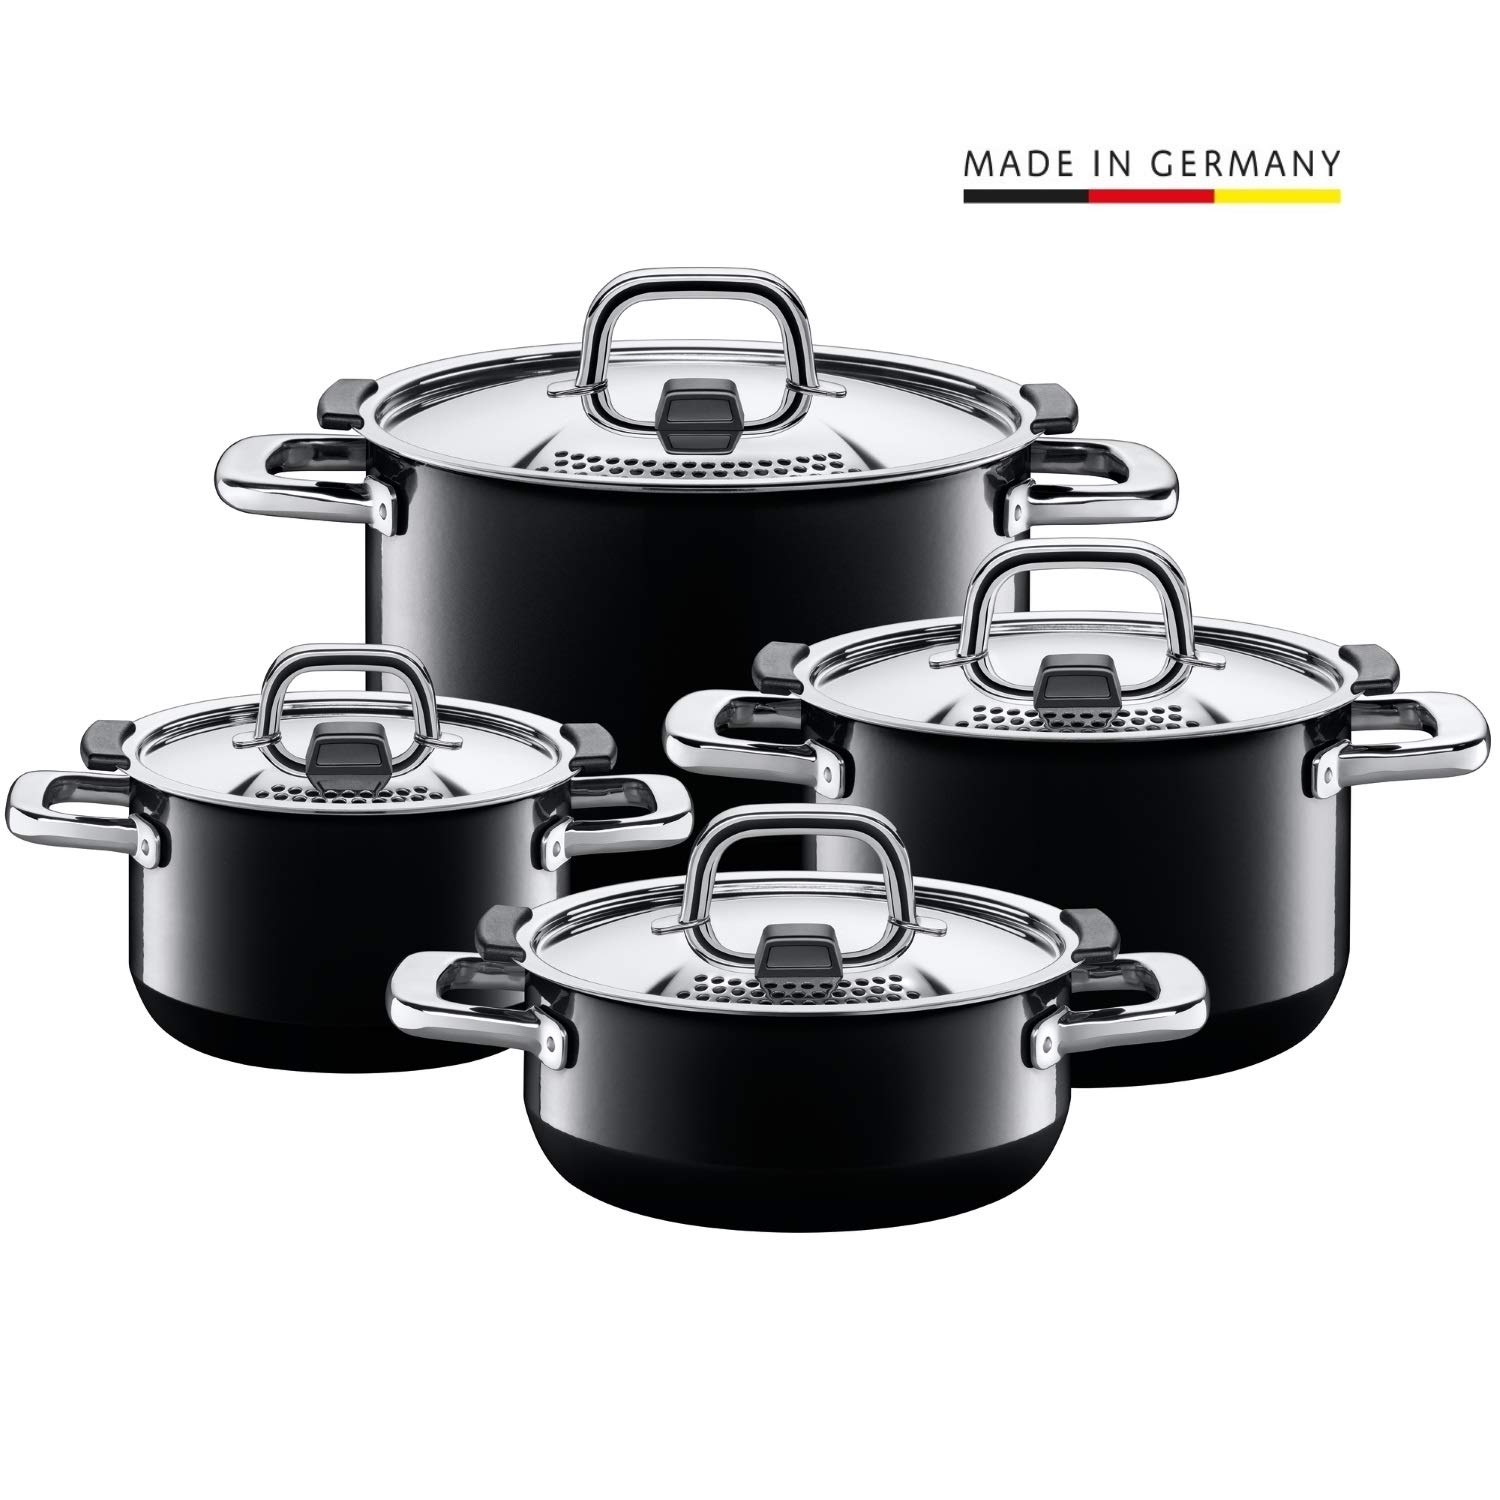 Silver 48 x 48 x 28 cm Silit Cookware Set Comodo 4 pcs of Stainless Steel